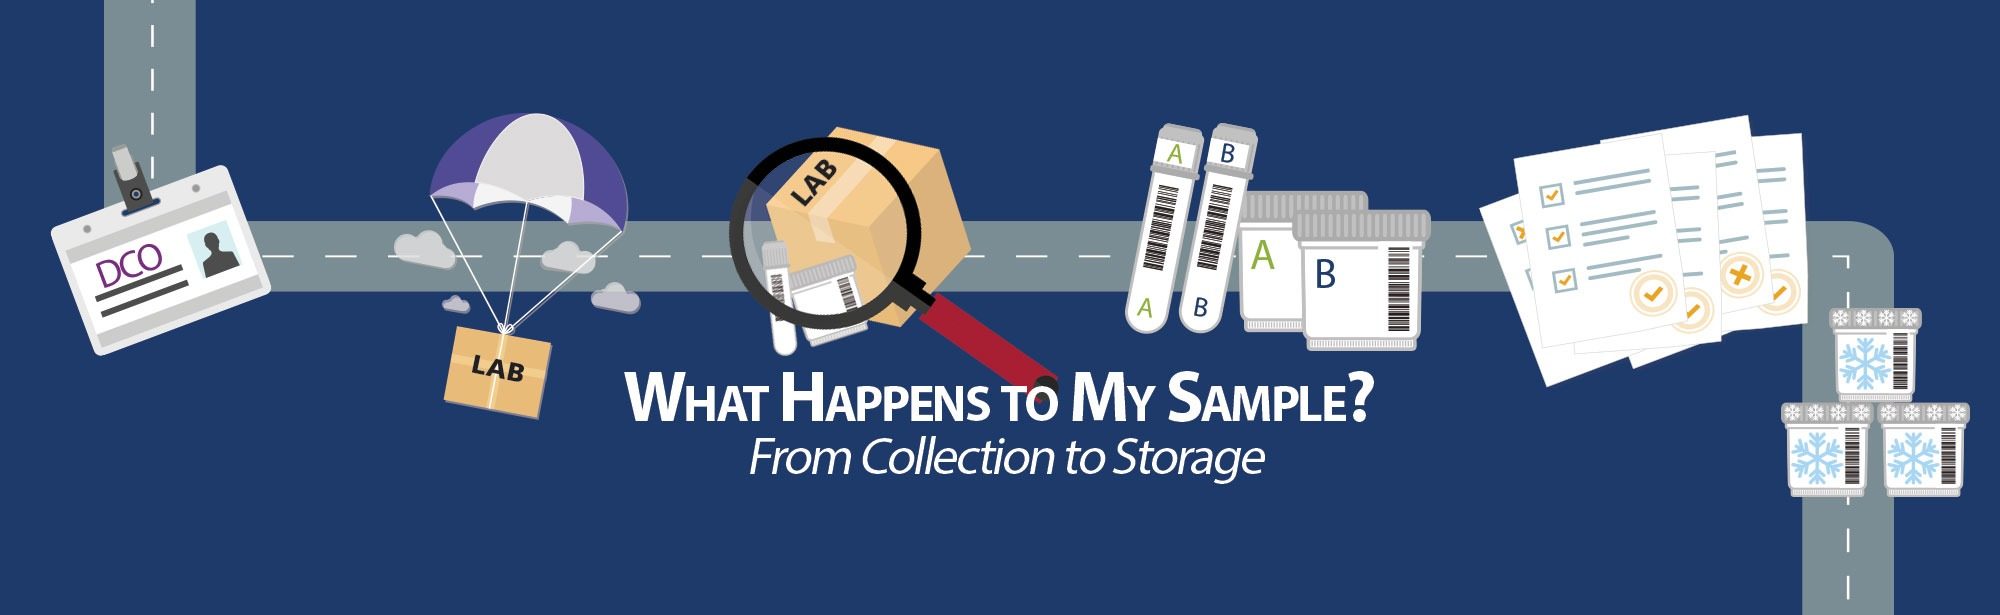 What Happens to My Sample: From Collection to Storage